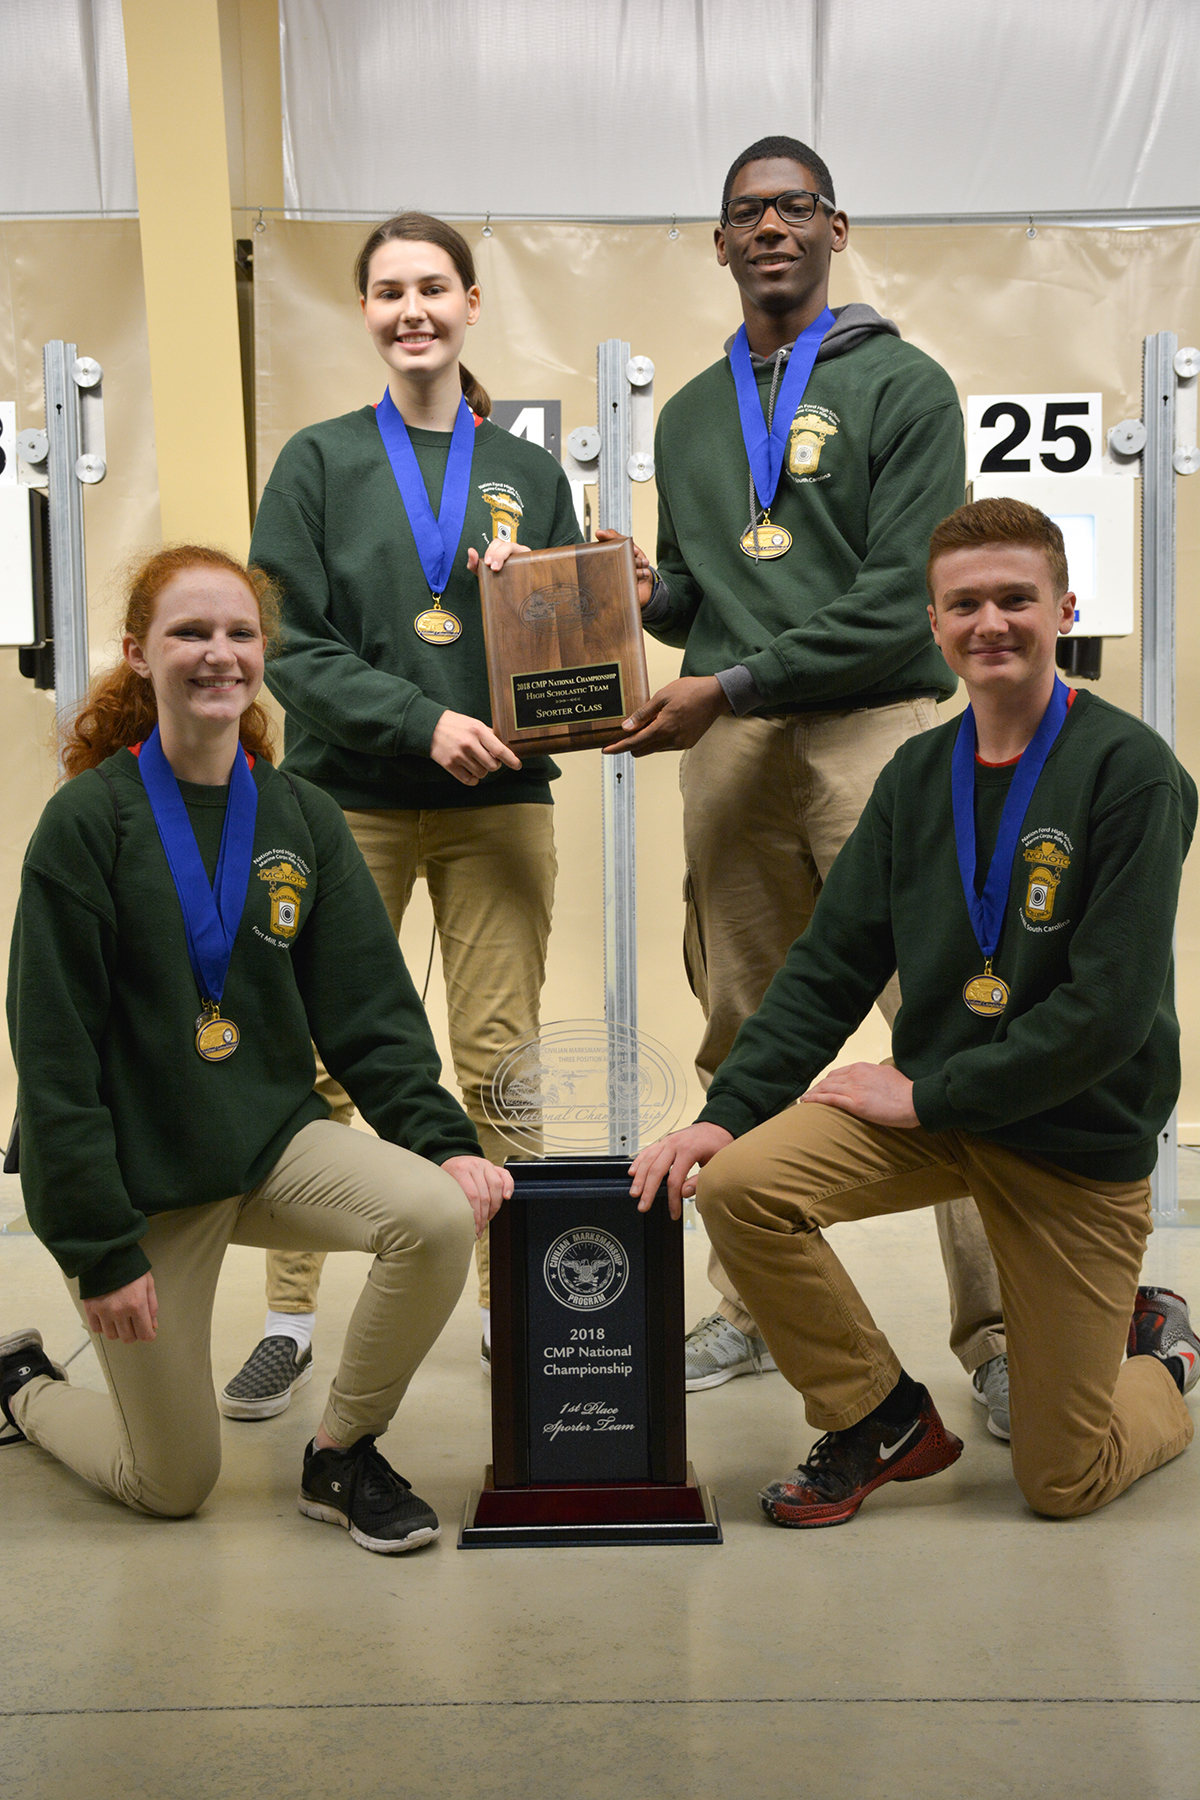 Nation Ford Earns Long Sought Win at 2018 CMP Three Position